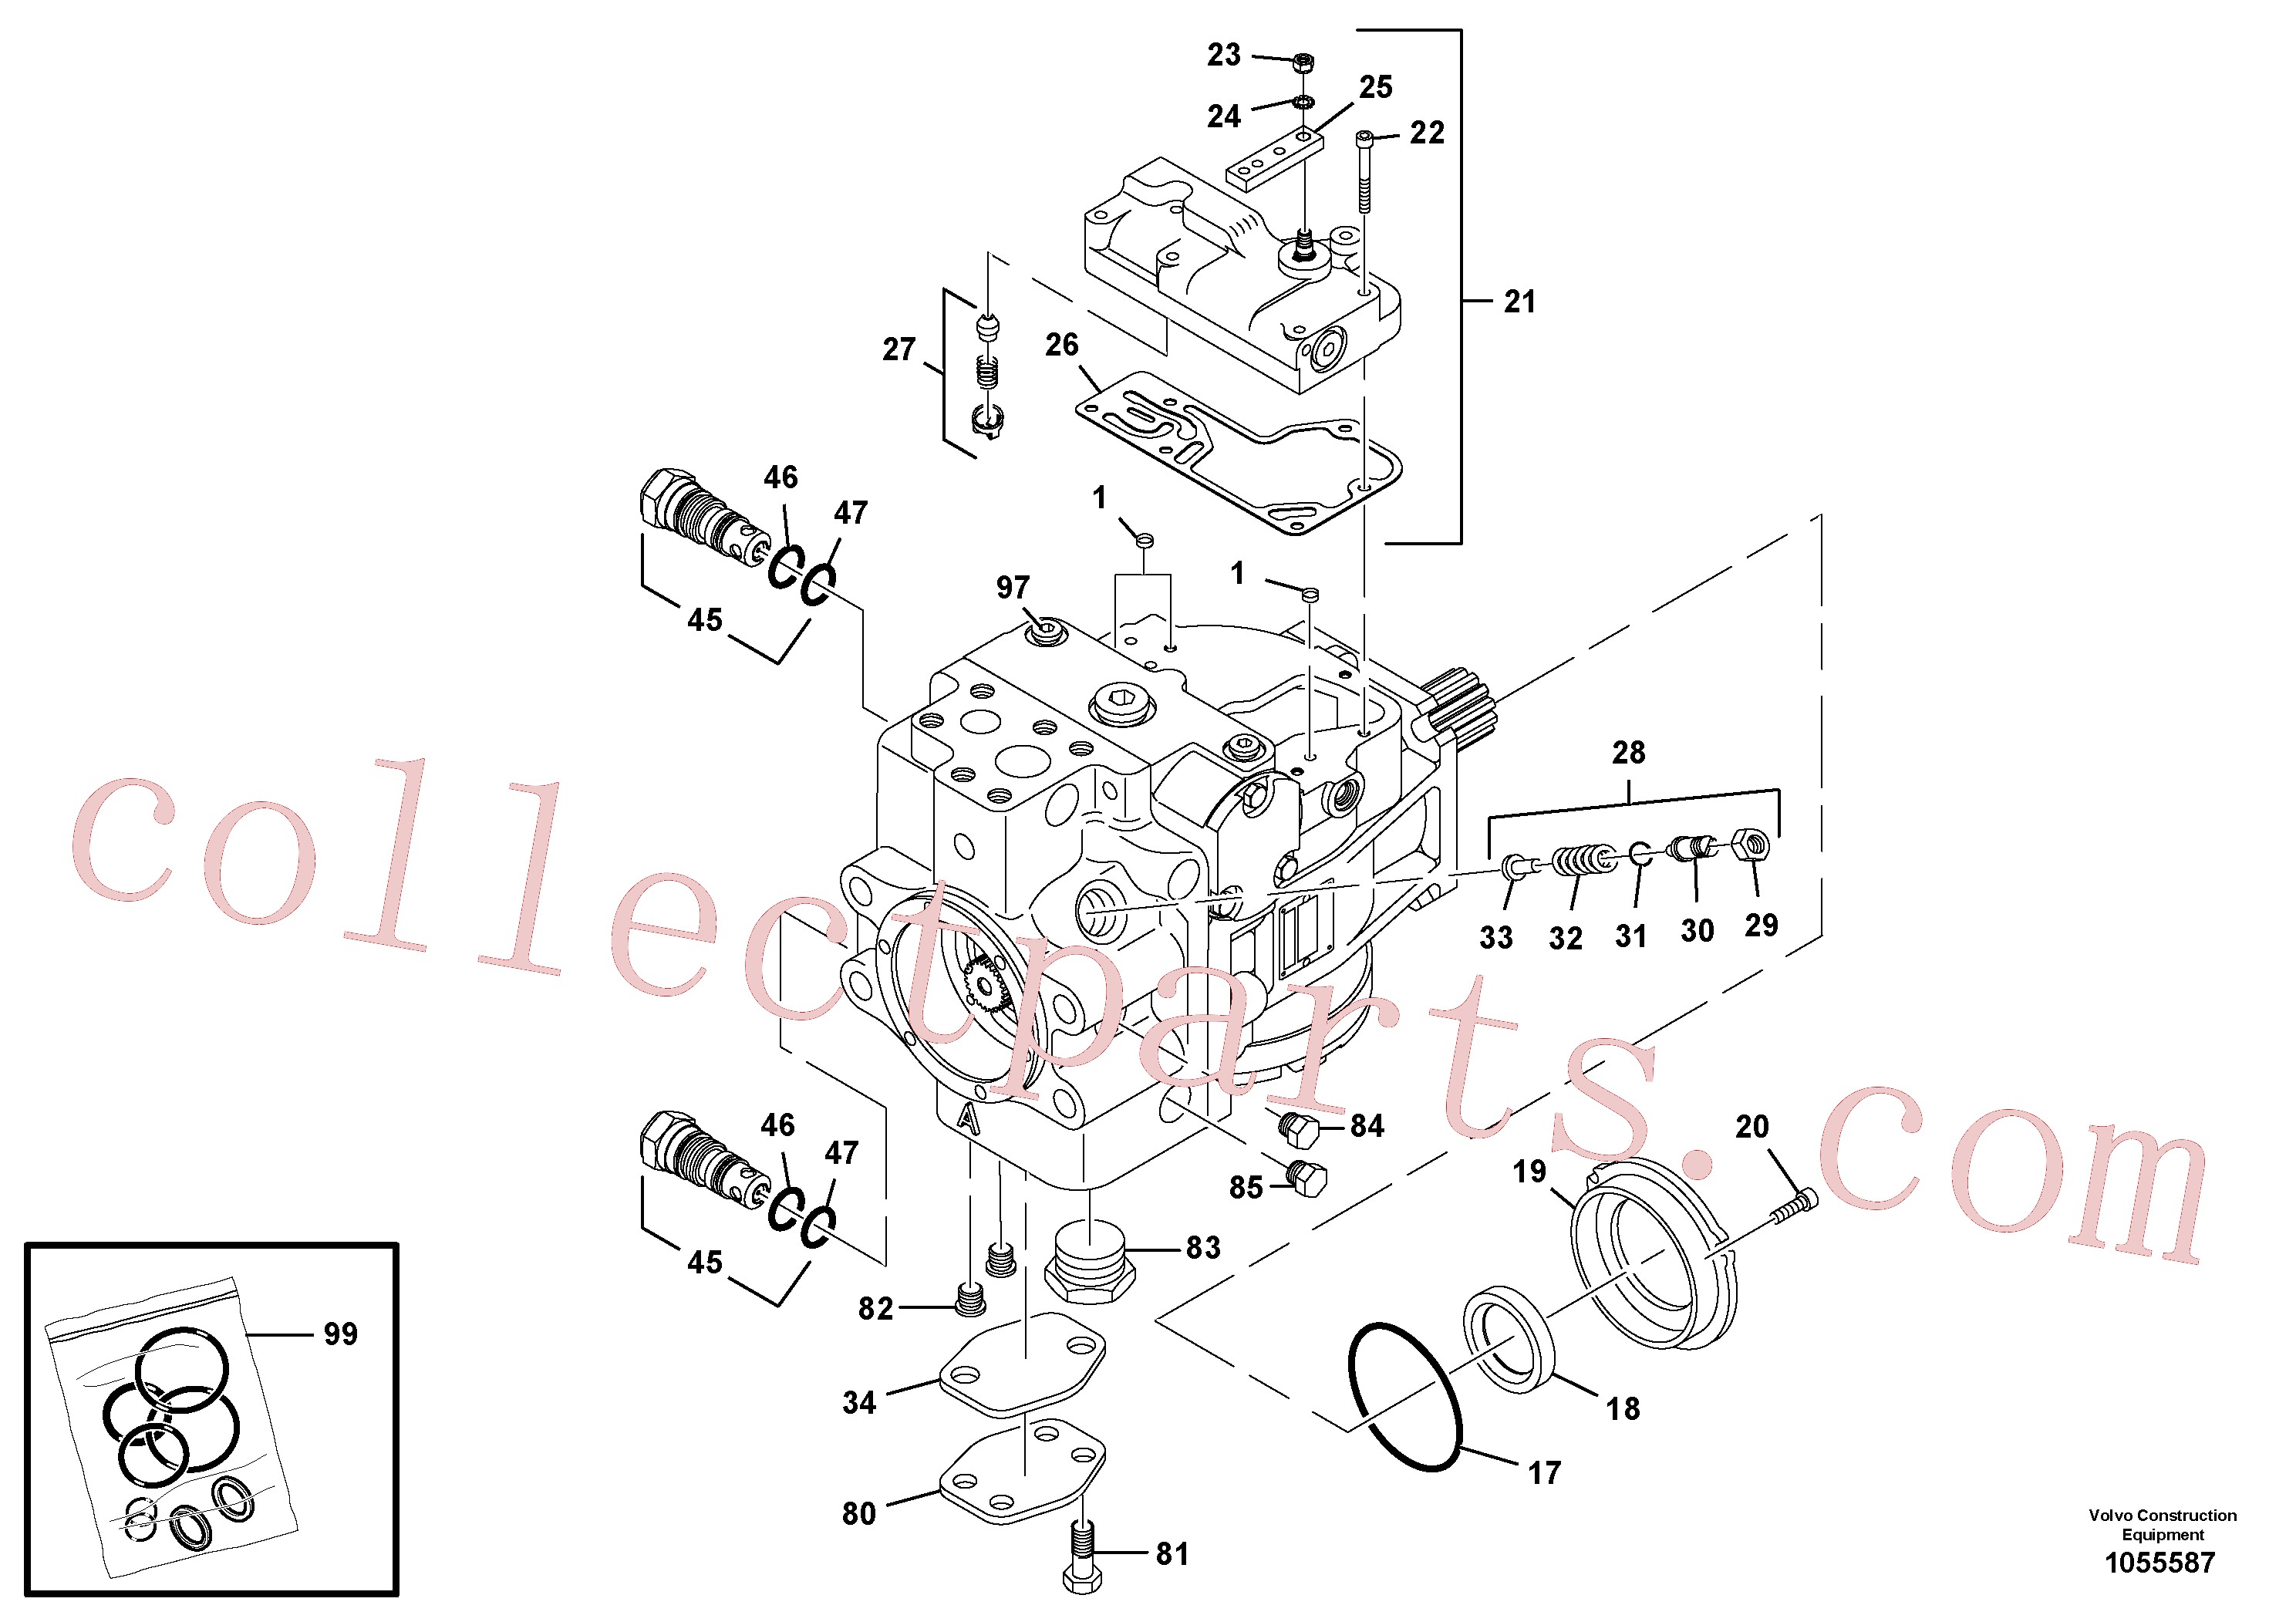 RM59933622 for Volvo Propulsion Pump(1055587 assembly)